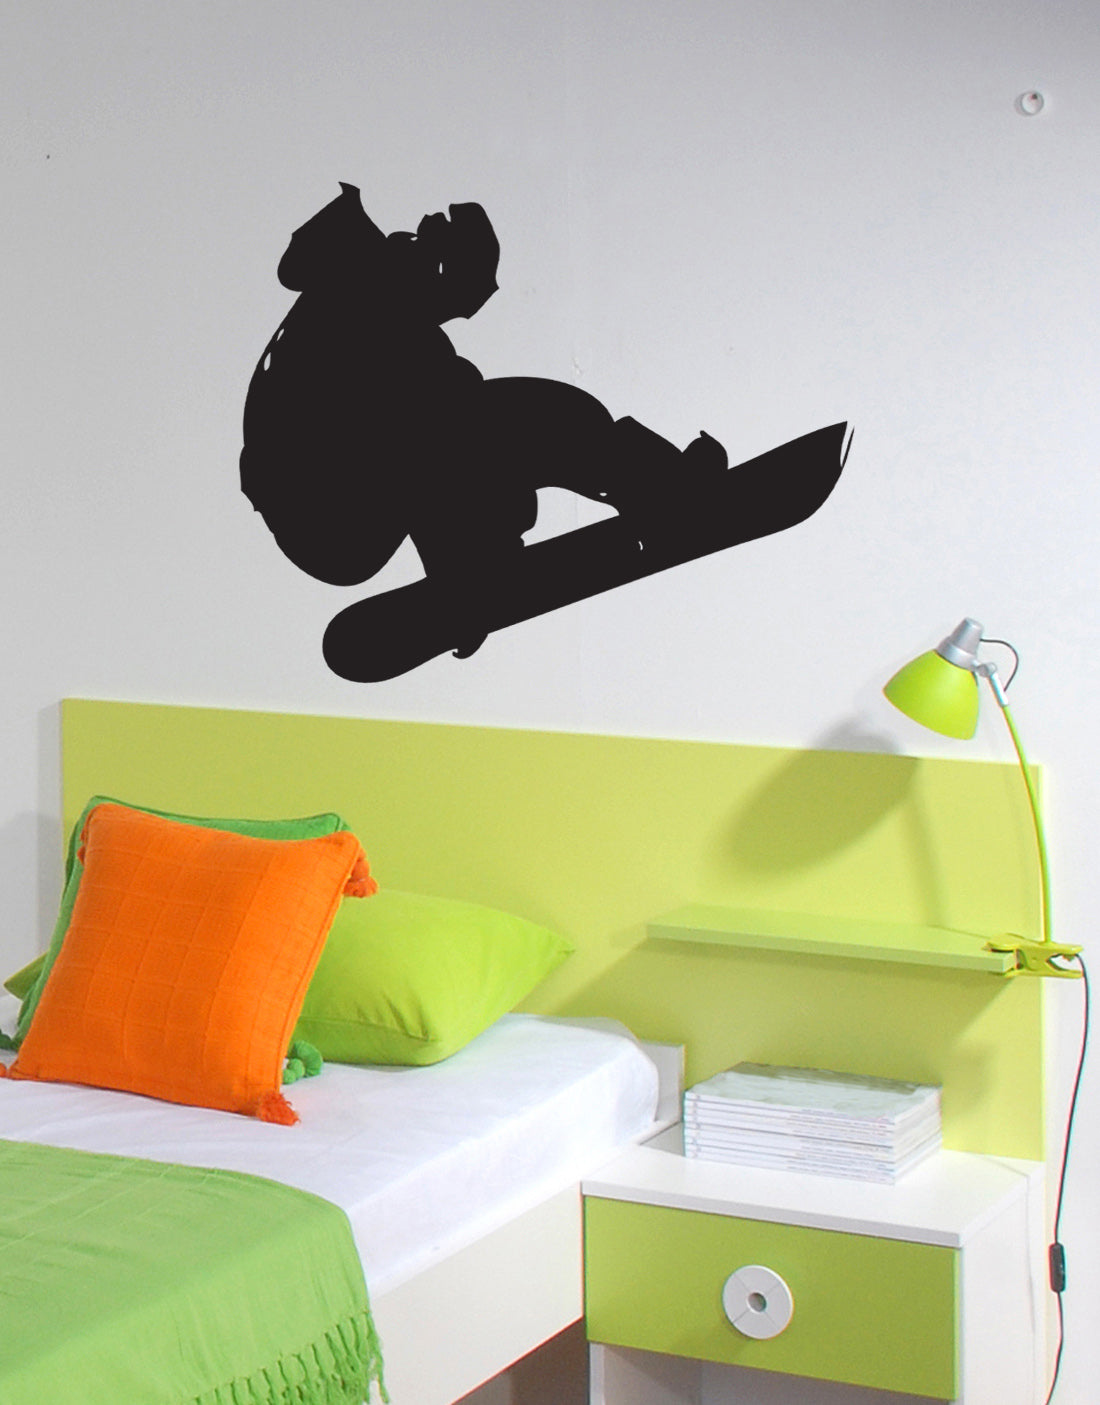 Snowboard Wall Decal | Snowboard Wall Art | StickerBrand